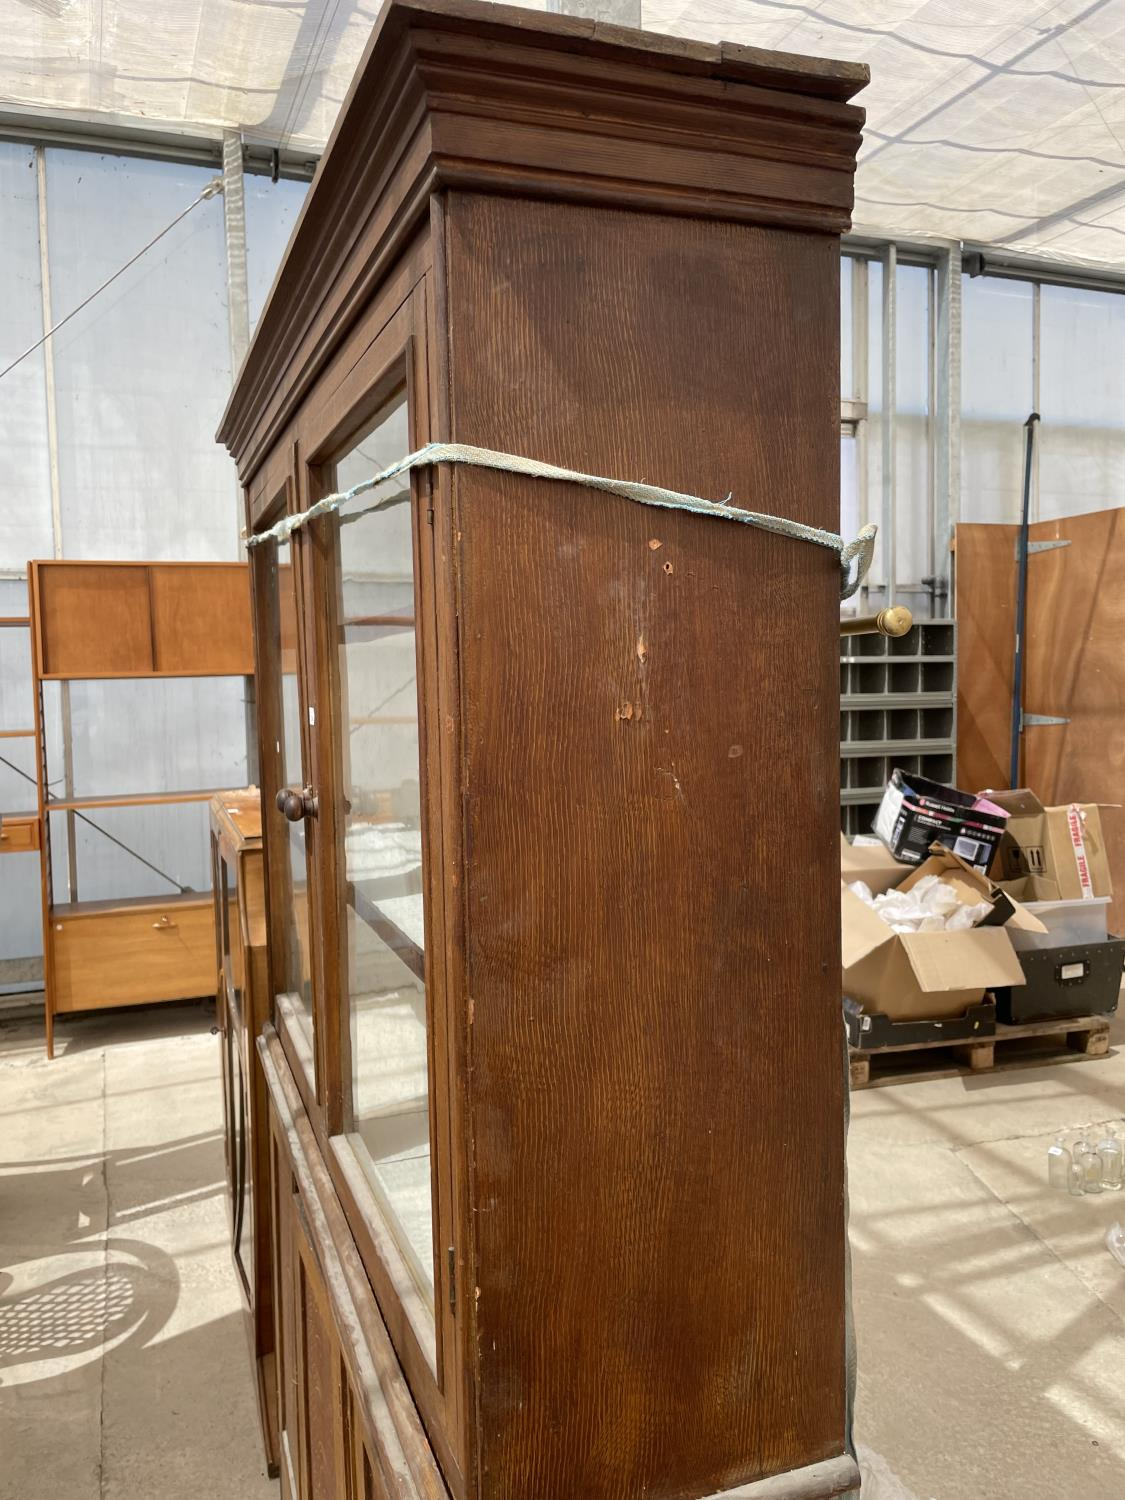 AN OAK BOOKCASE CABINET WITH TWO UPPER GLAZED DOORS AND THREE LOWER DOORS - Image 5 of 5